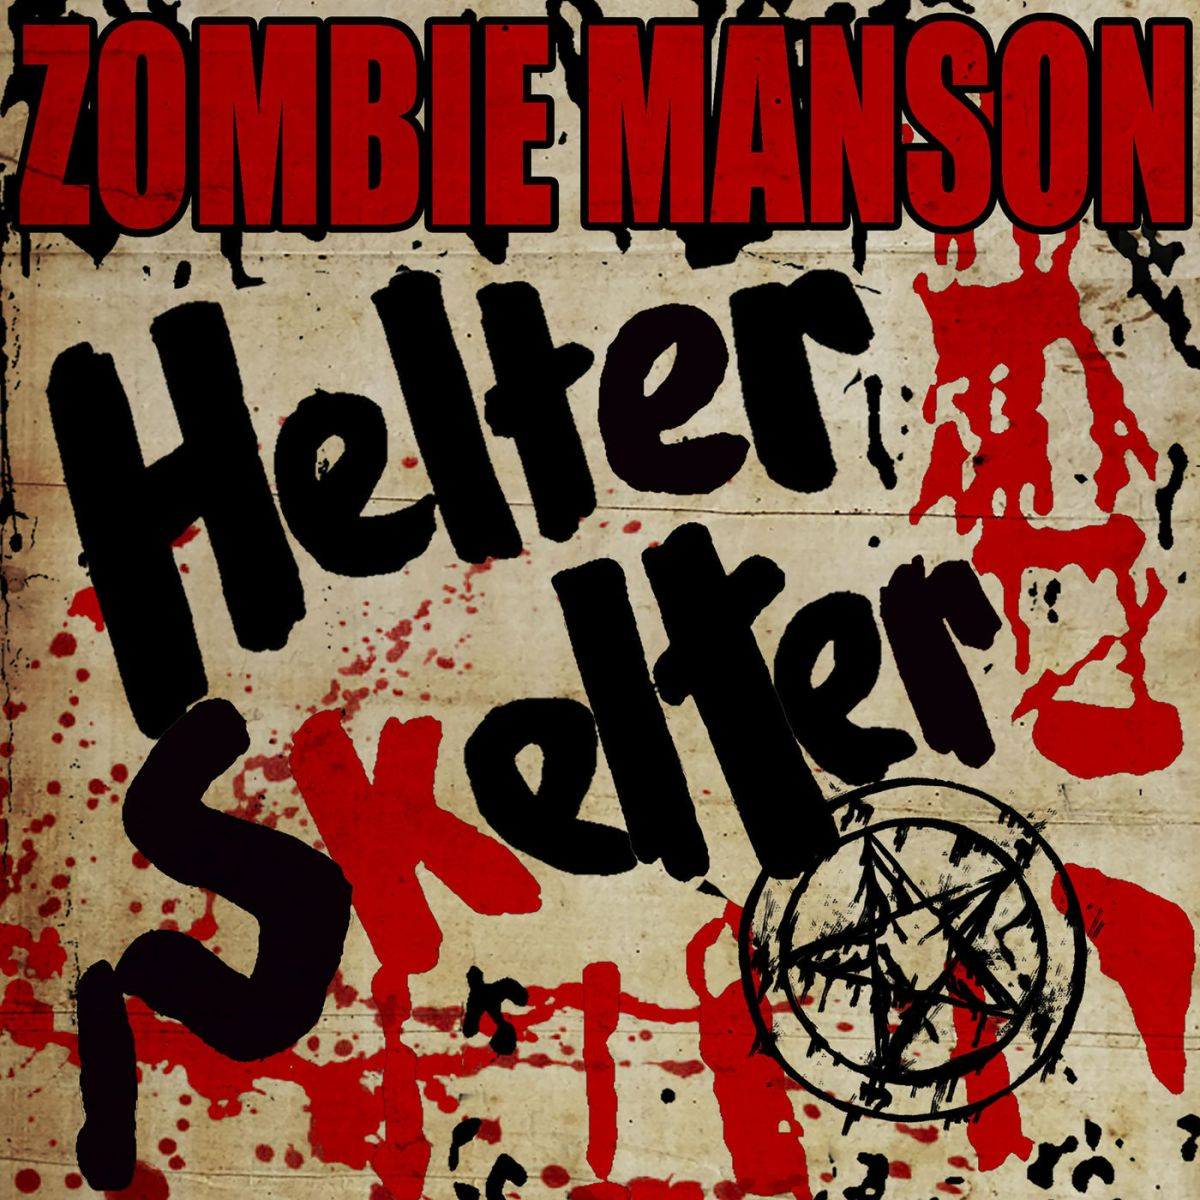 ROB ZOMBIE & MARILYN MANSON - HELTER SKELTER (BEATLES)